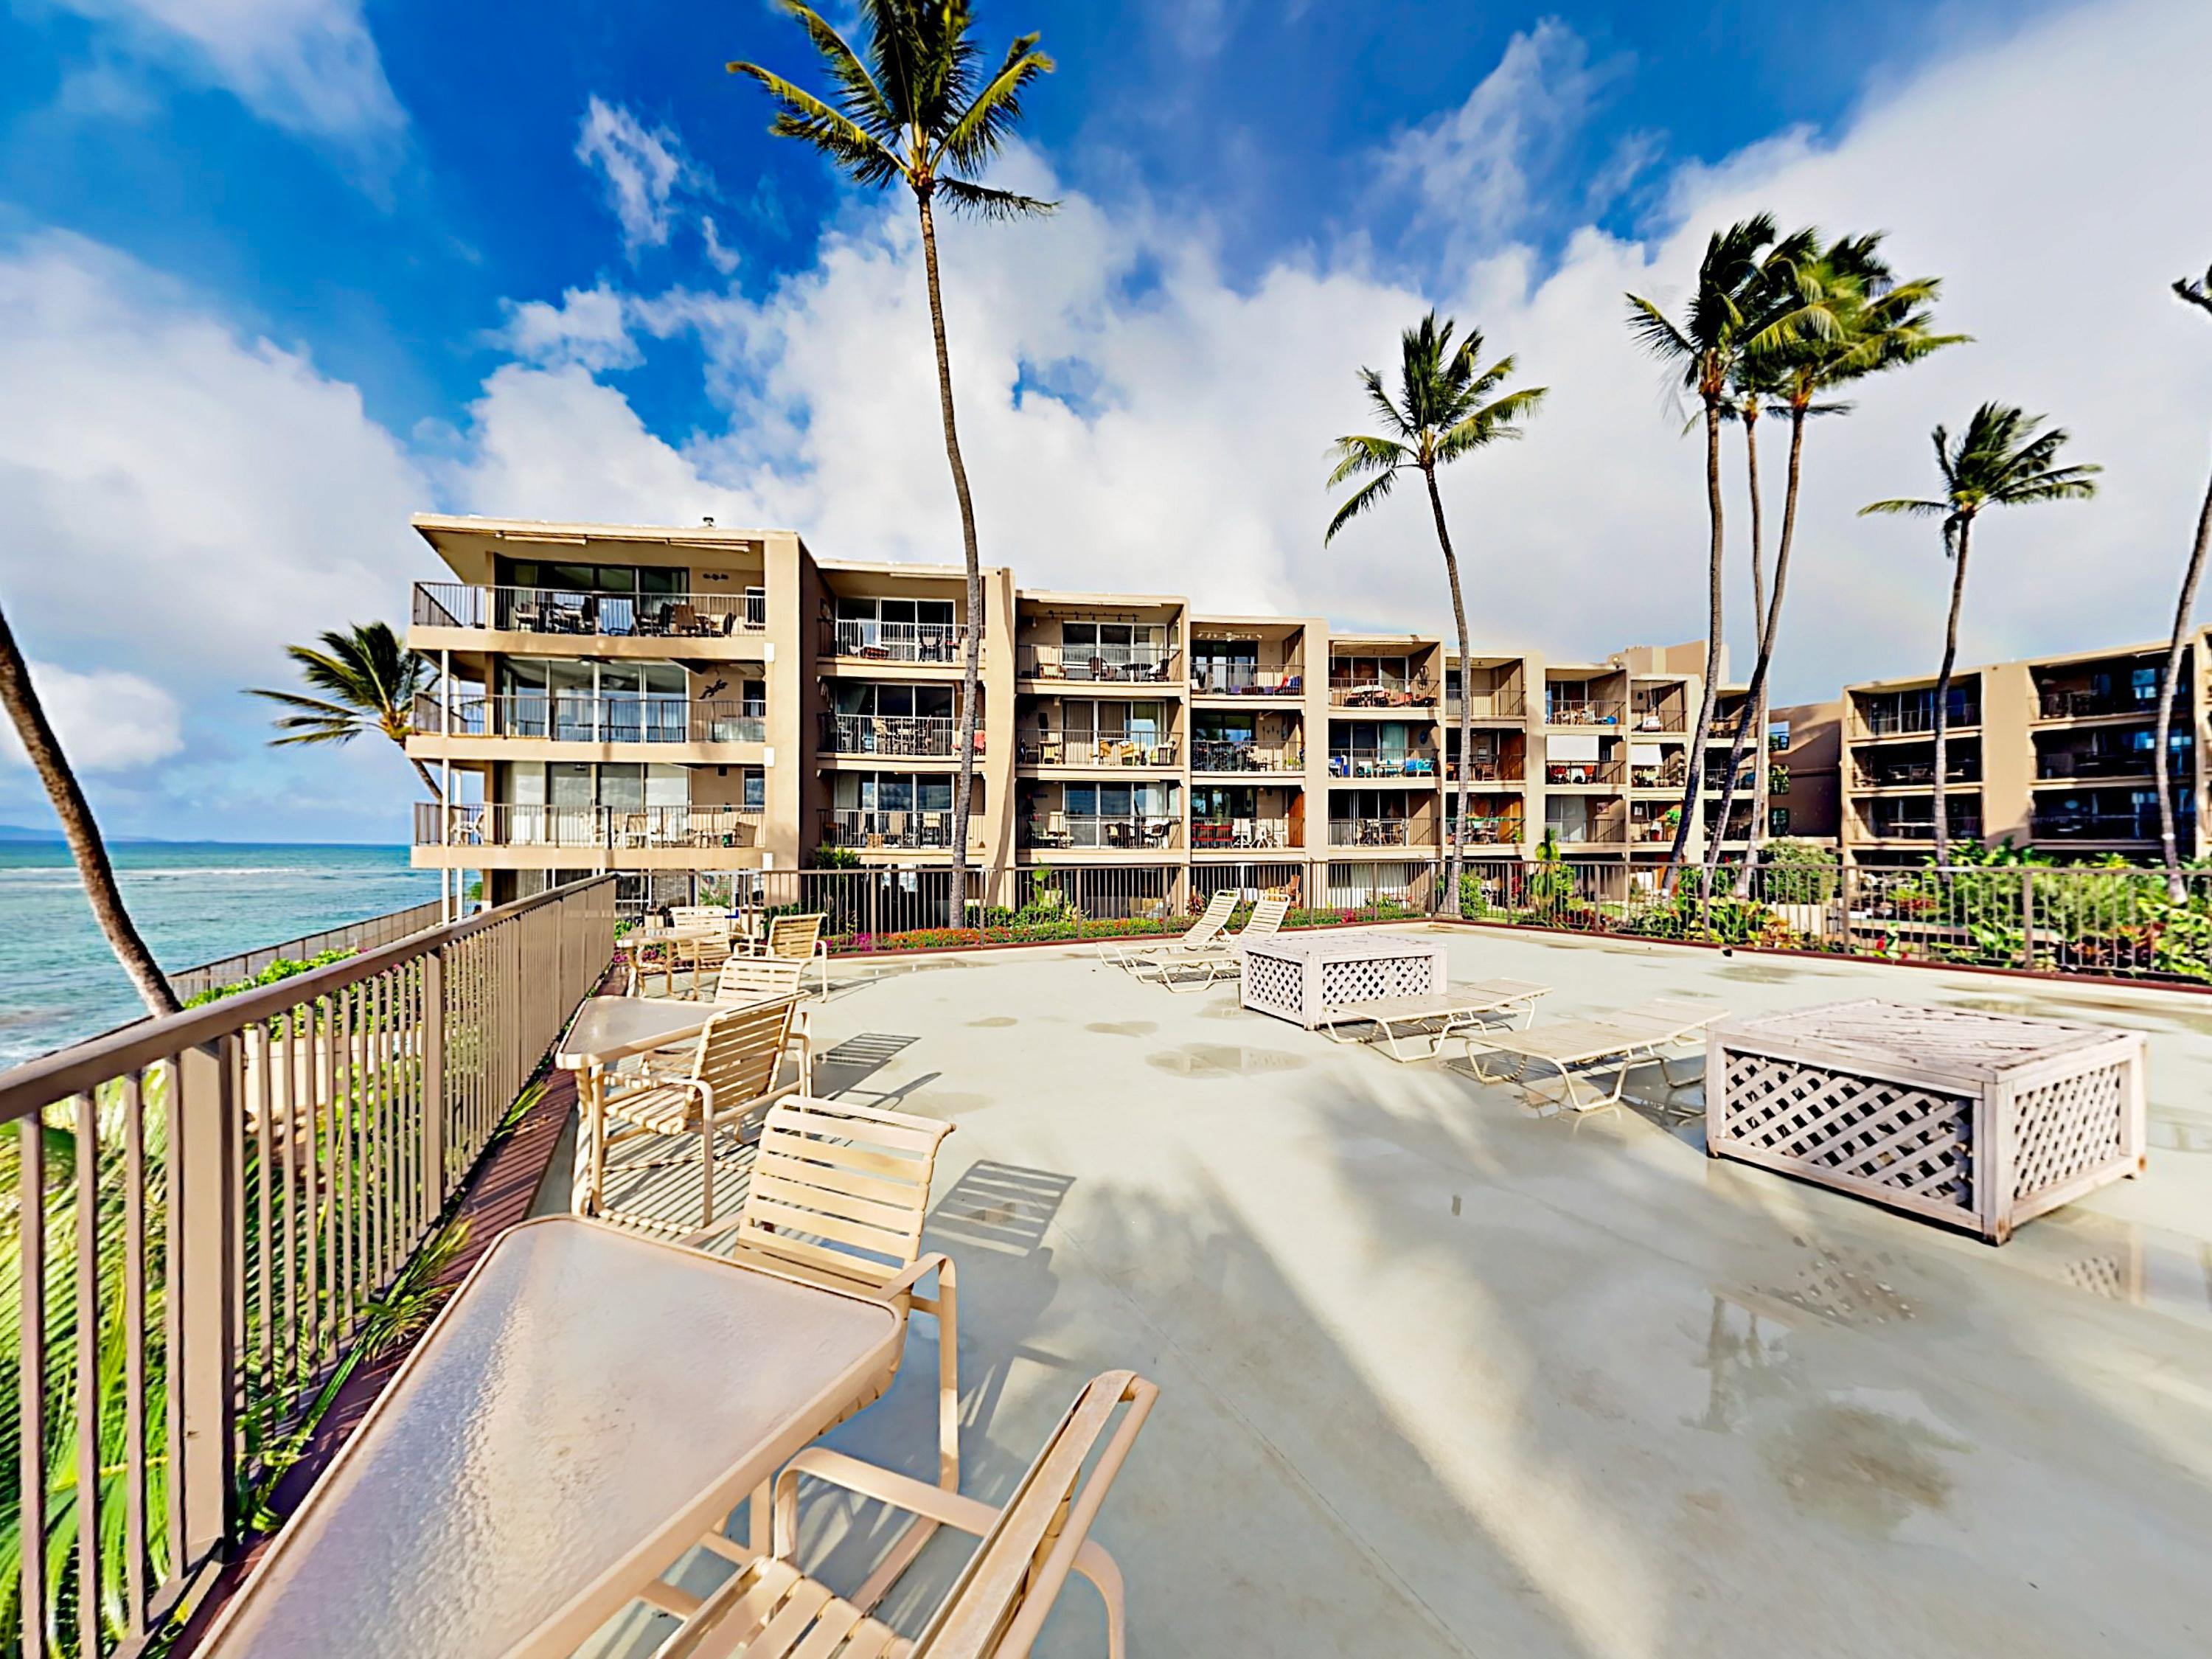 The complex's elevated sundeck overlooks the surf with a view of Molokai island.